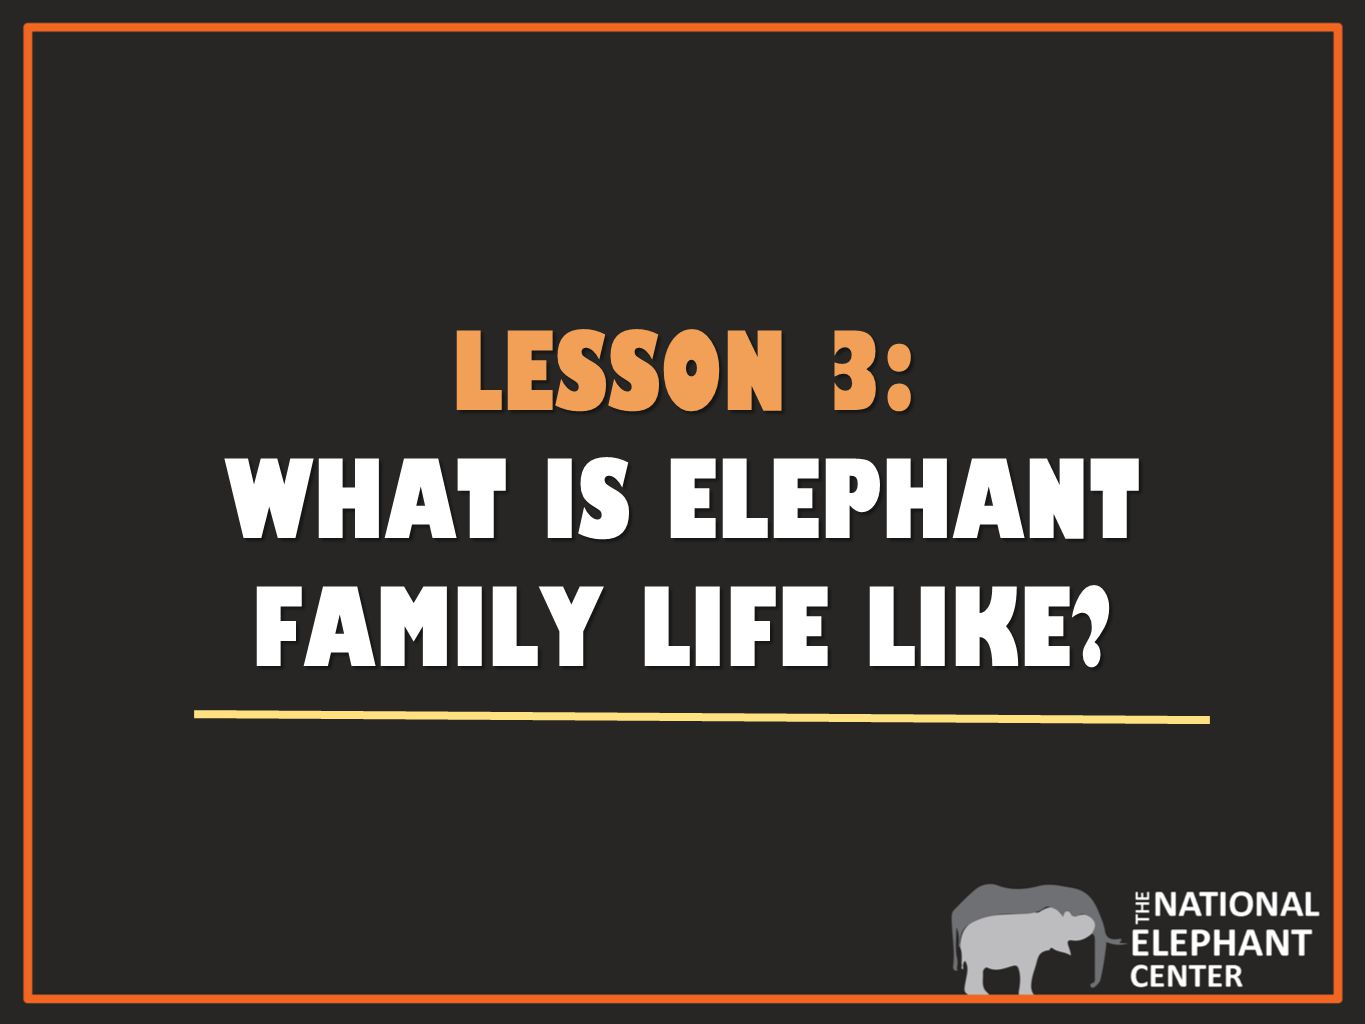 LESSON 3: WHAT IS ELEPHANT FAMILY LIFE LIKE